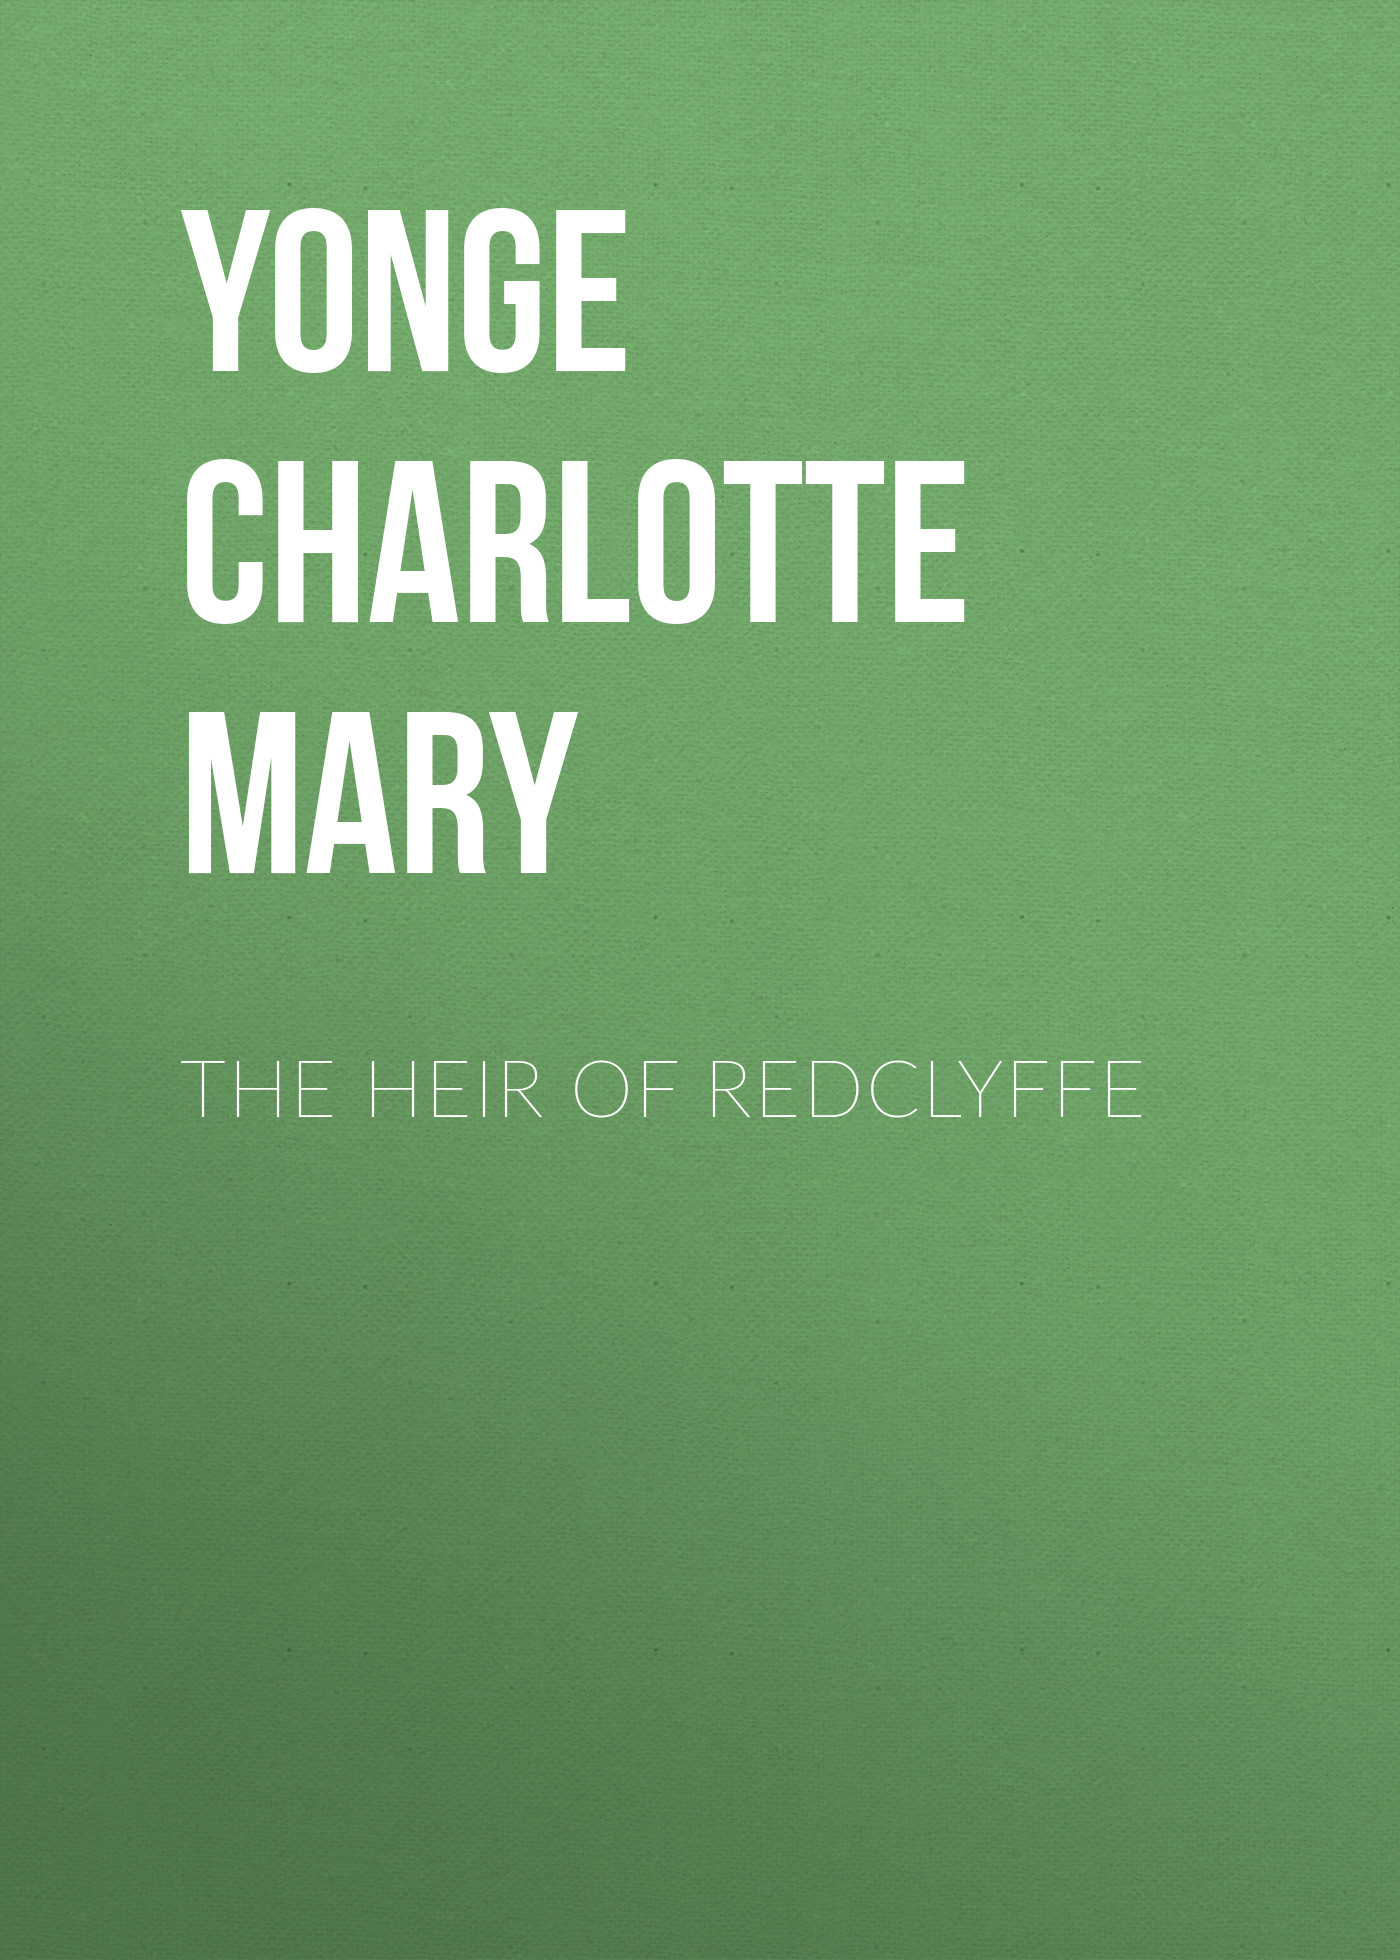 Yonge Charlotte Mary The Heir of Redclyffe yonge charlotte mary countess kate